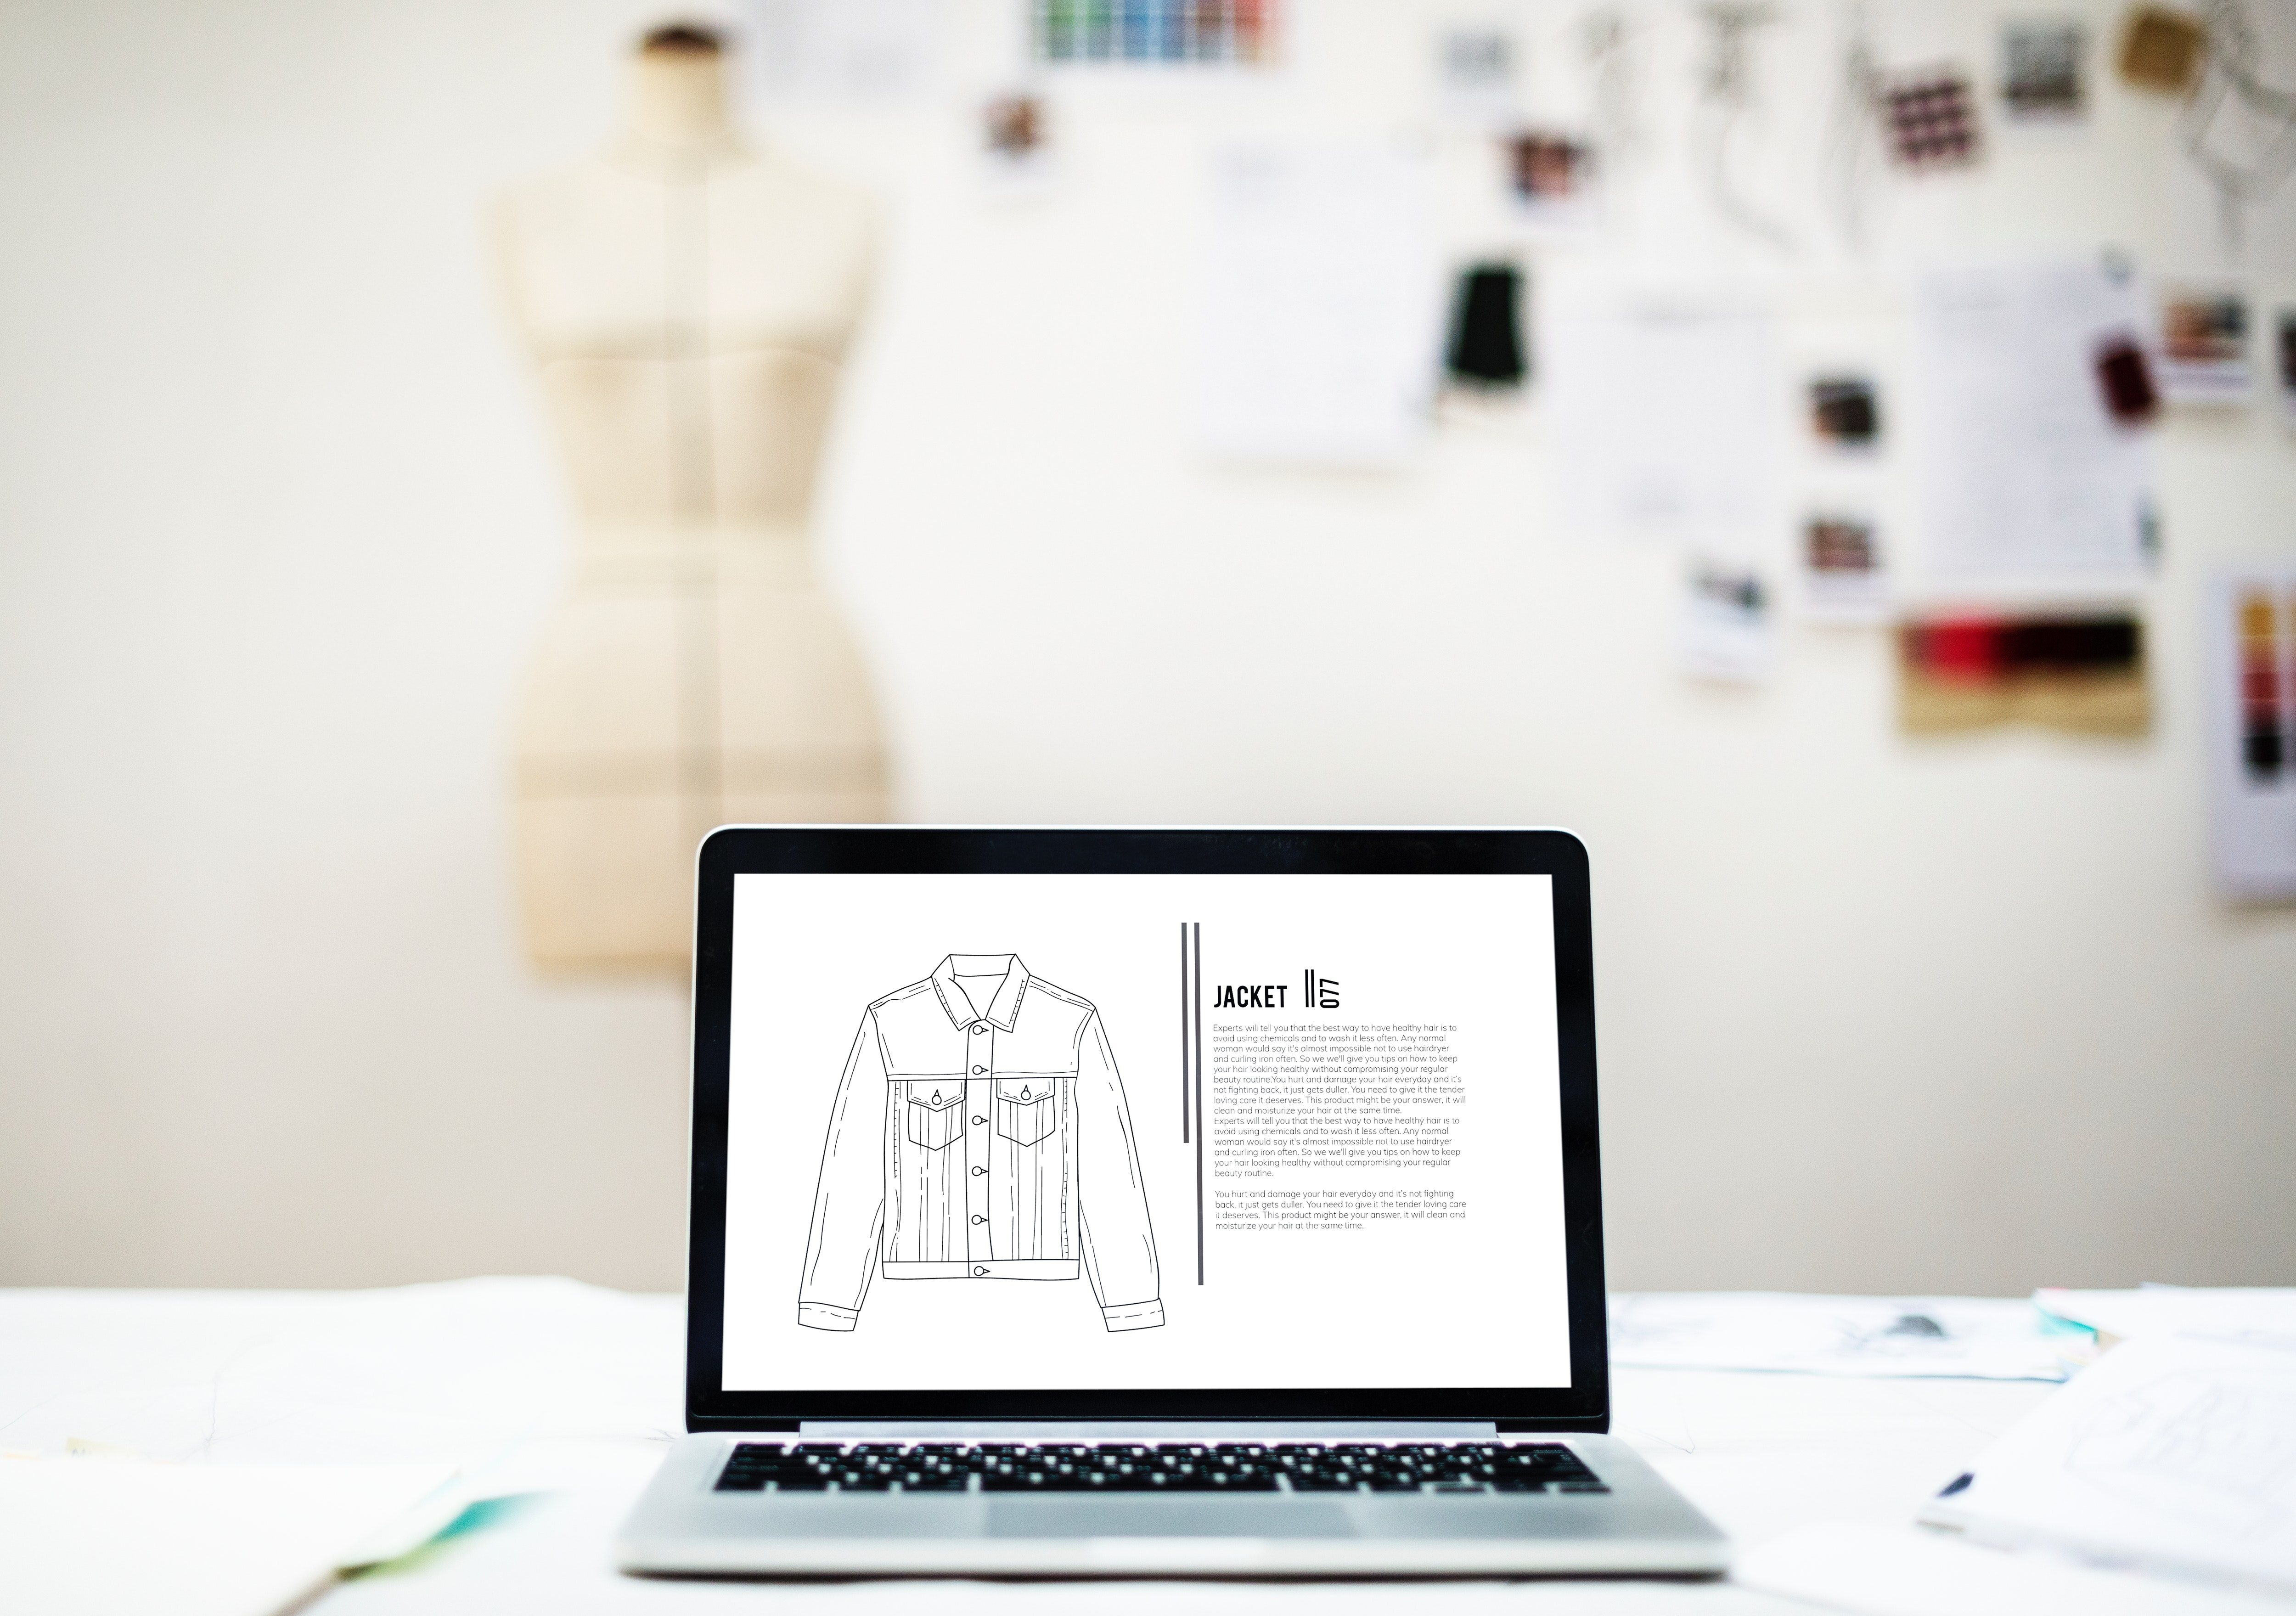 fashion design weekend courses in hyderabad